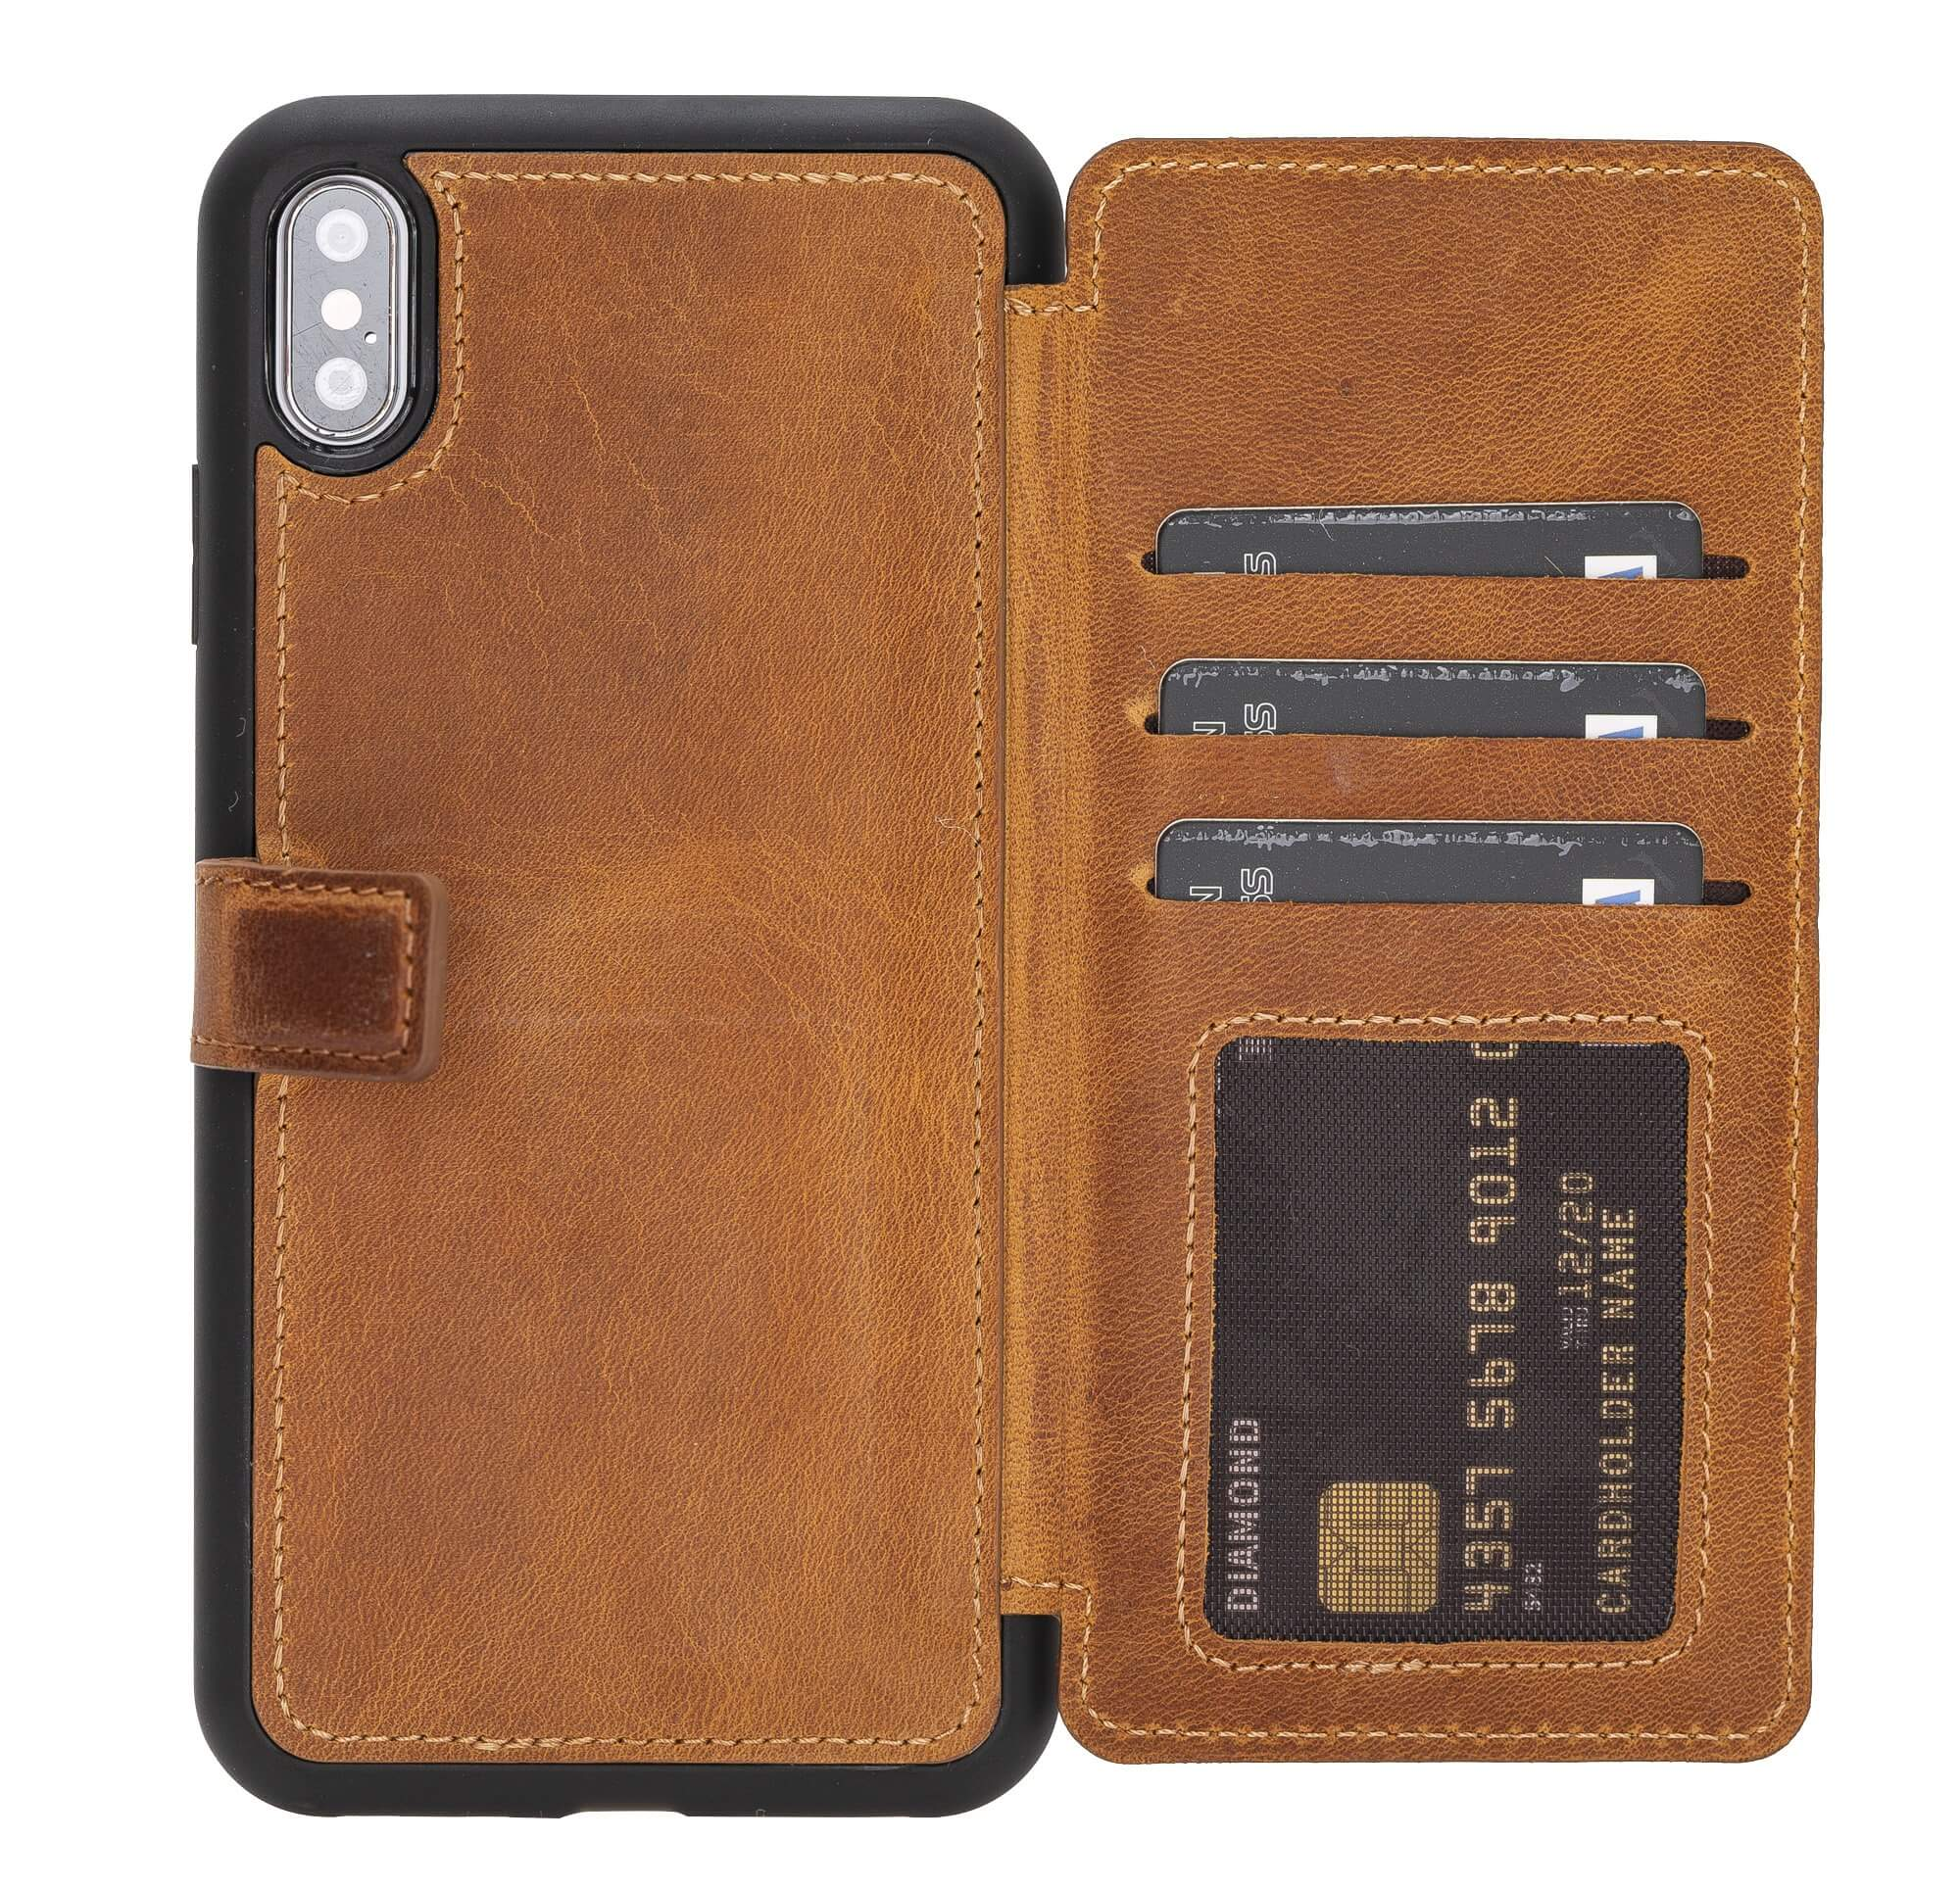 Verona RFID Blocking Leather Slim Wallet Case for iPhone XS Max